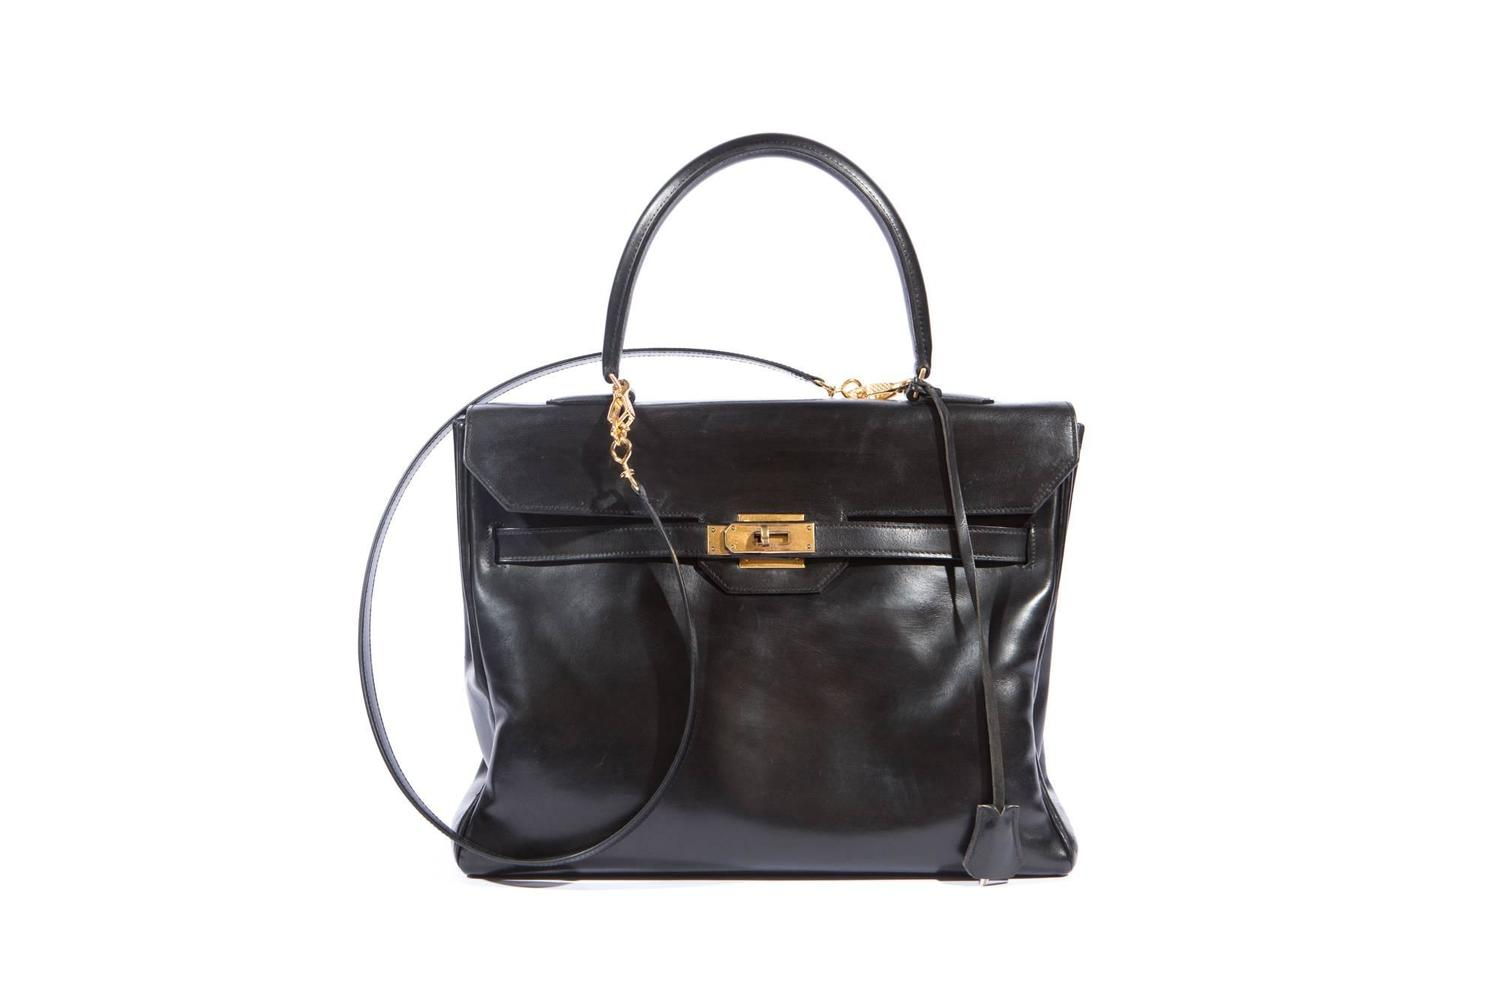 sacs hermes paris - Gorgeous Hermes Black Boxcalf Monaco Bag at 1stdibs